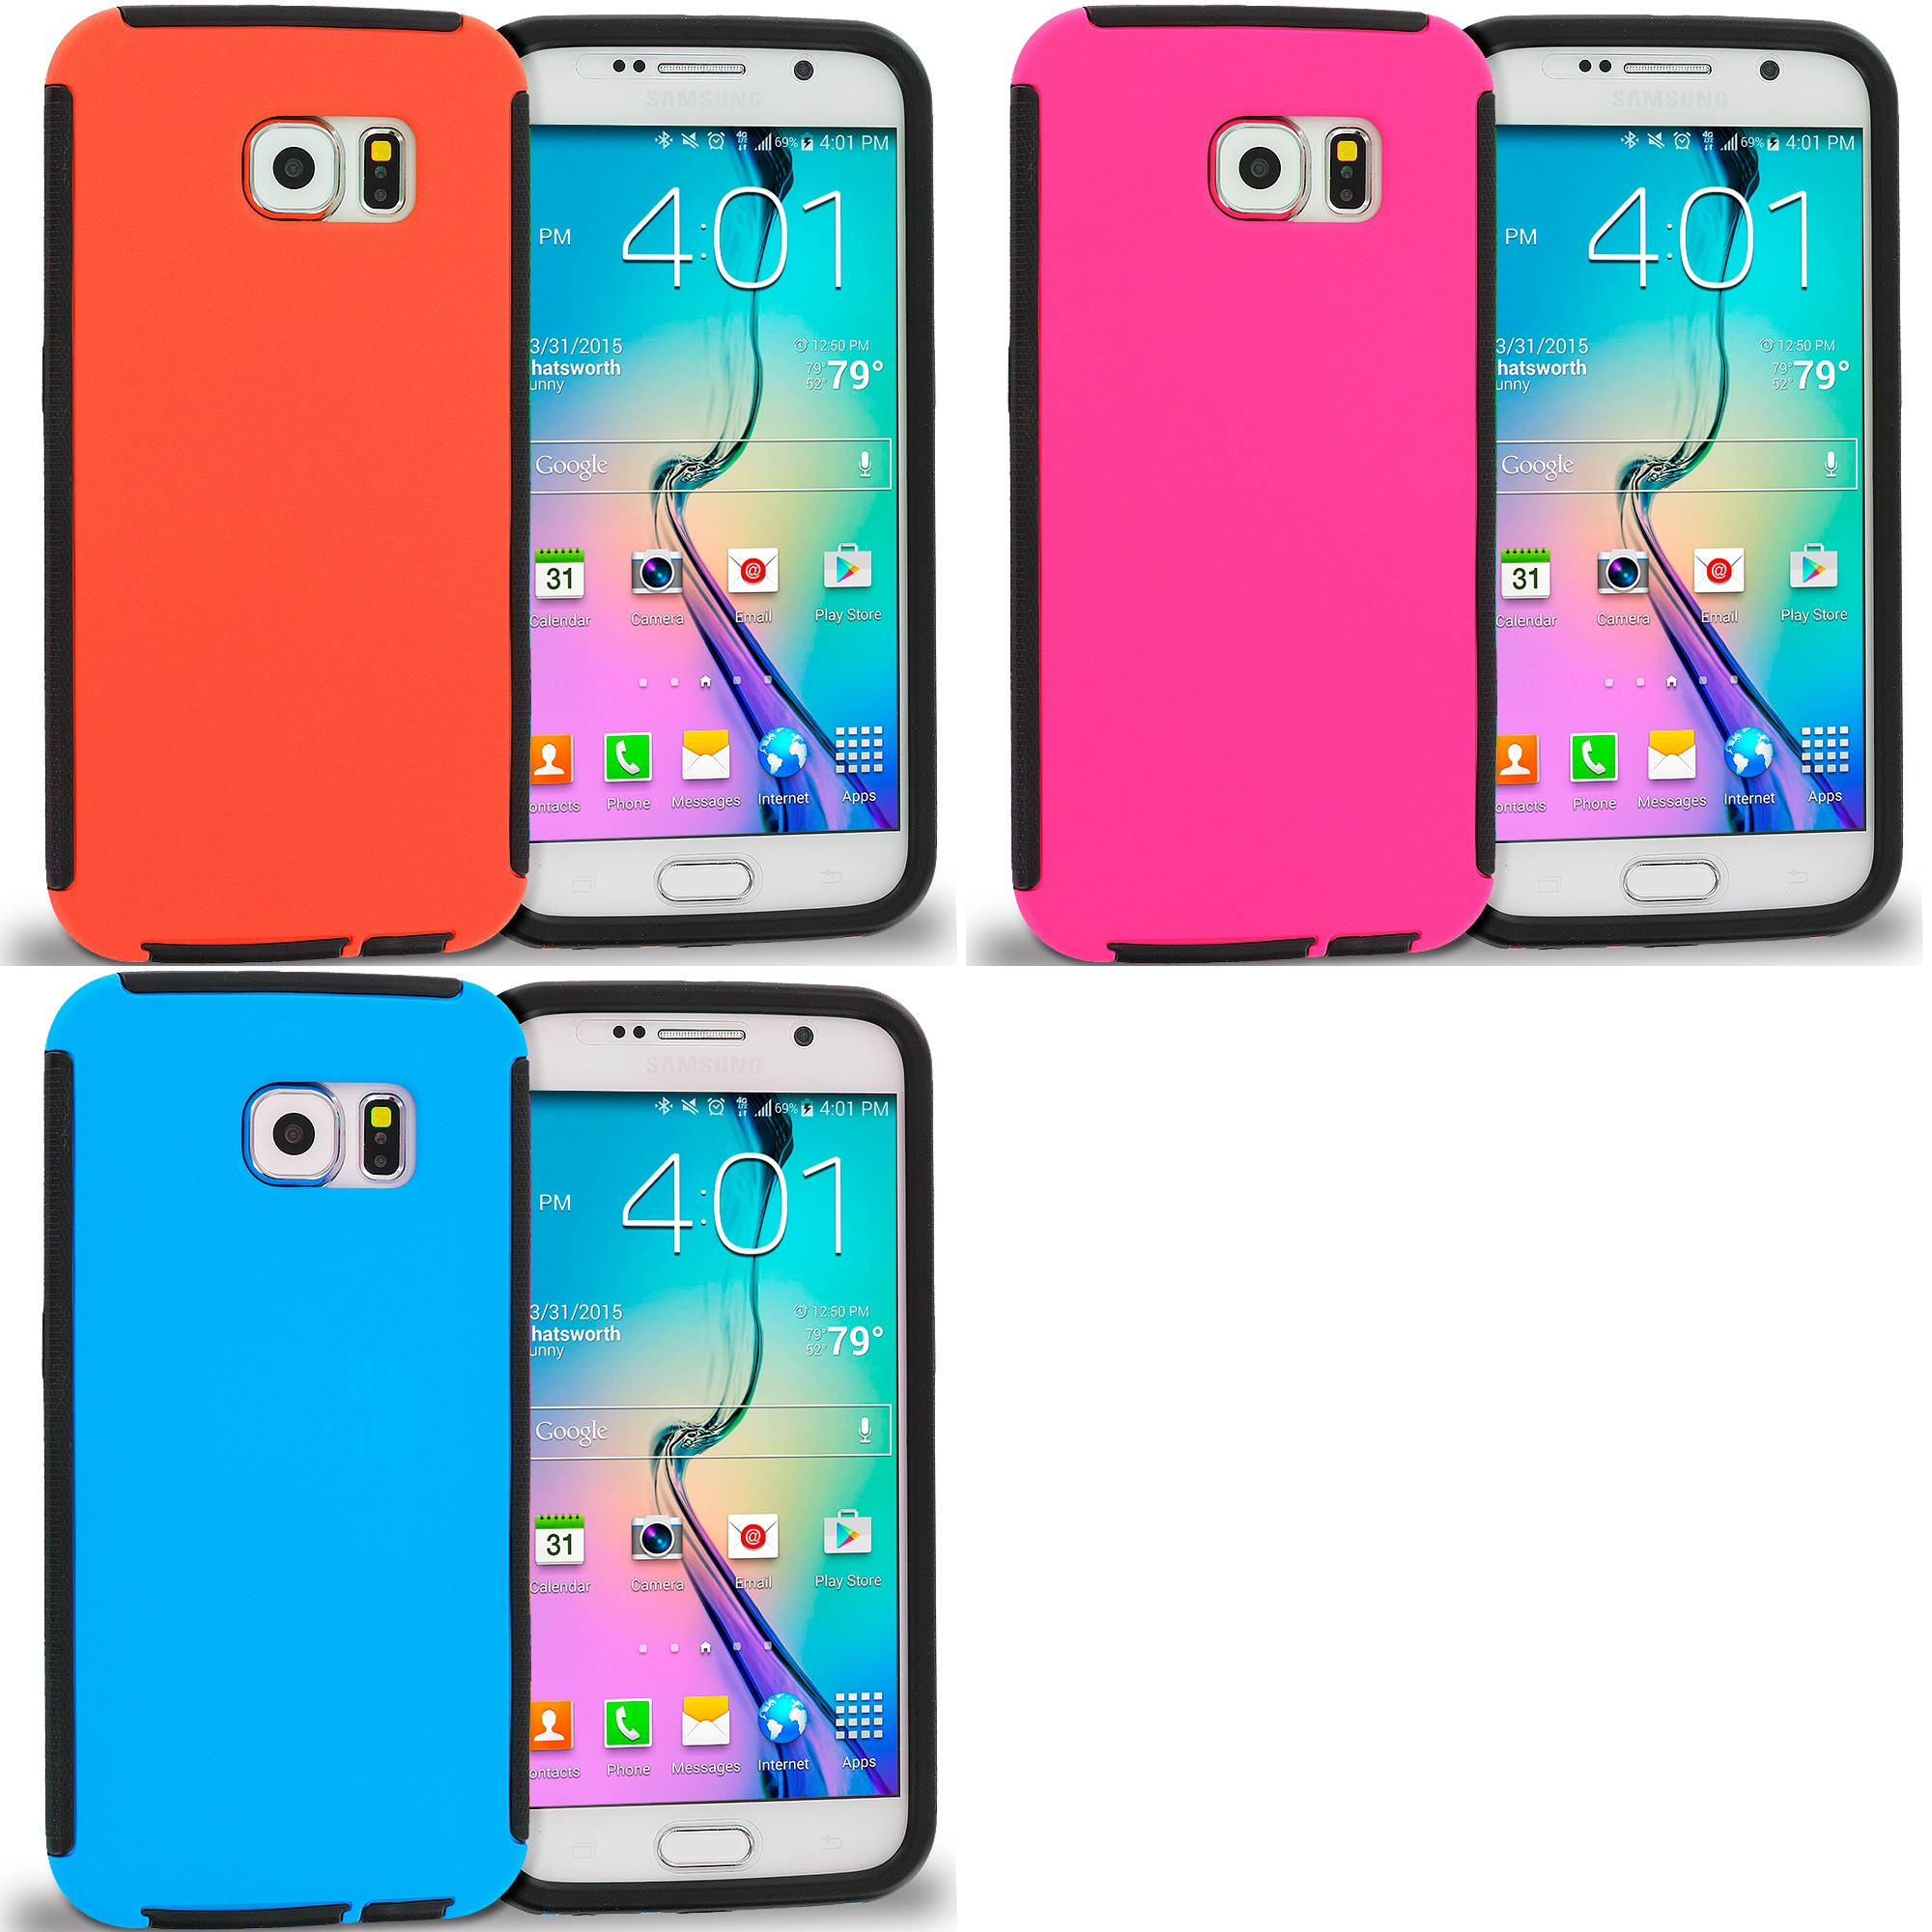 Samsung Galaxy S6 Combo Pack : Black / Orange Hybrid Hard TPU Shockproof Case Cover With Built in Screen Protector